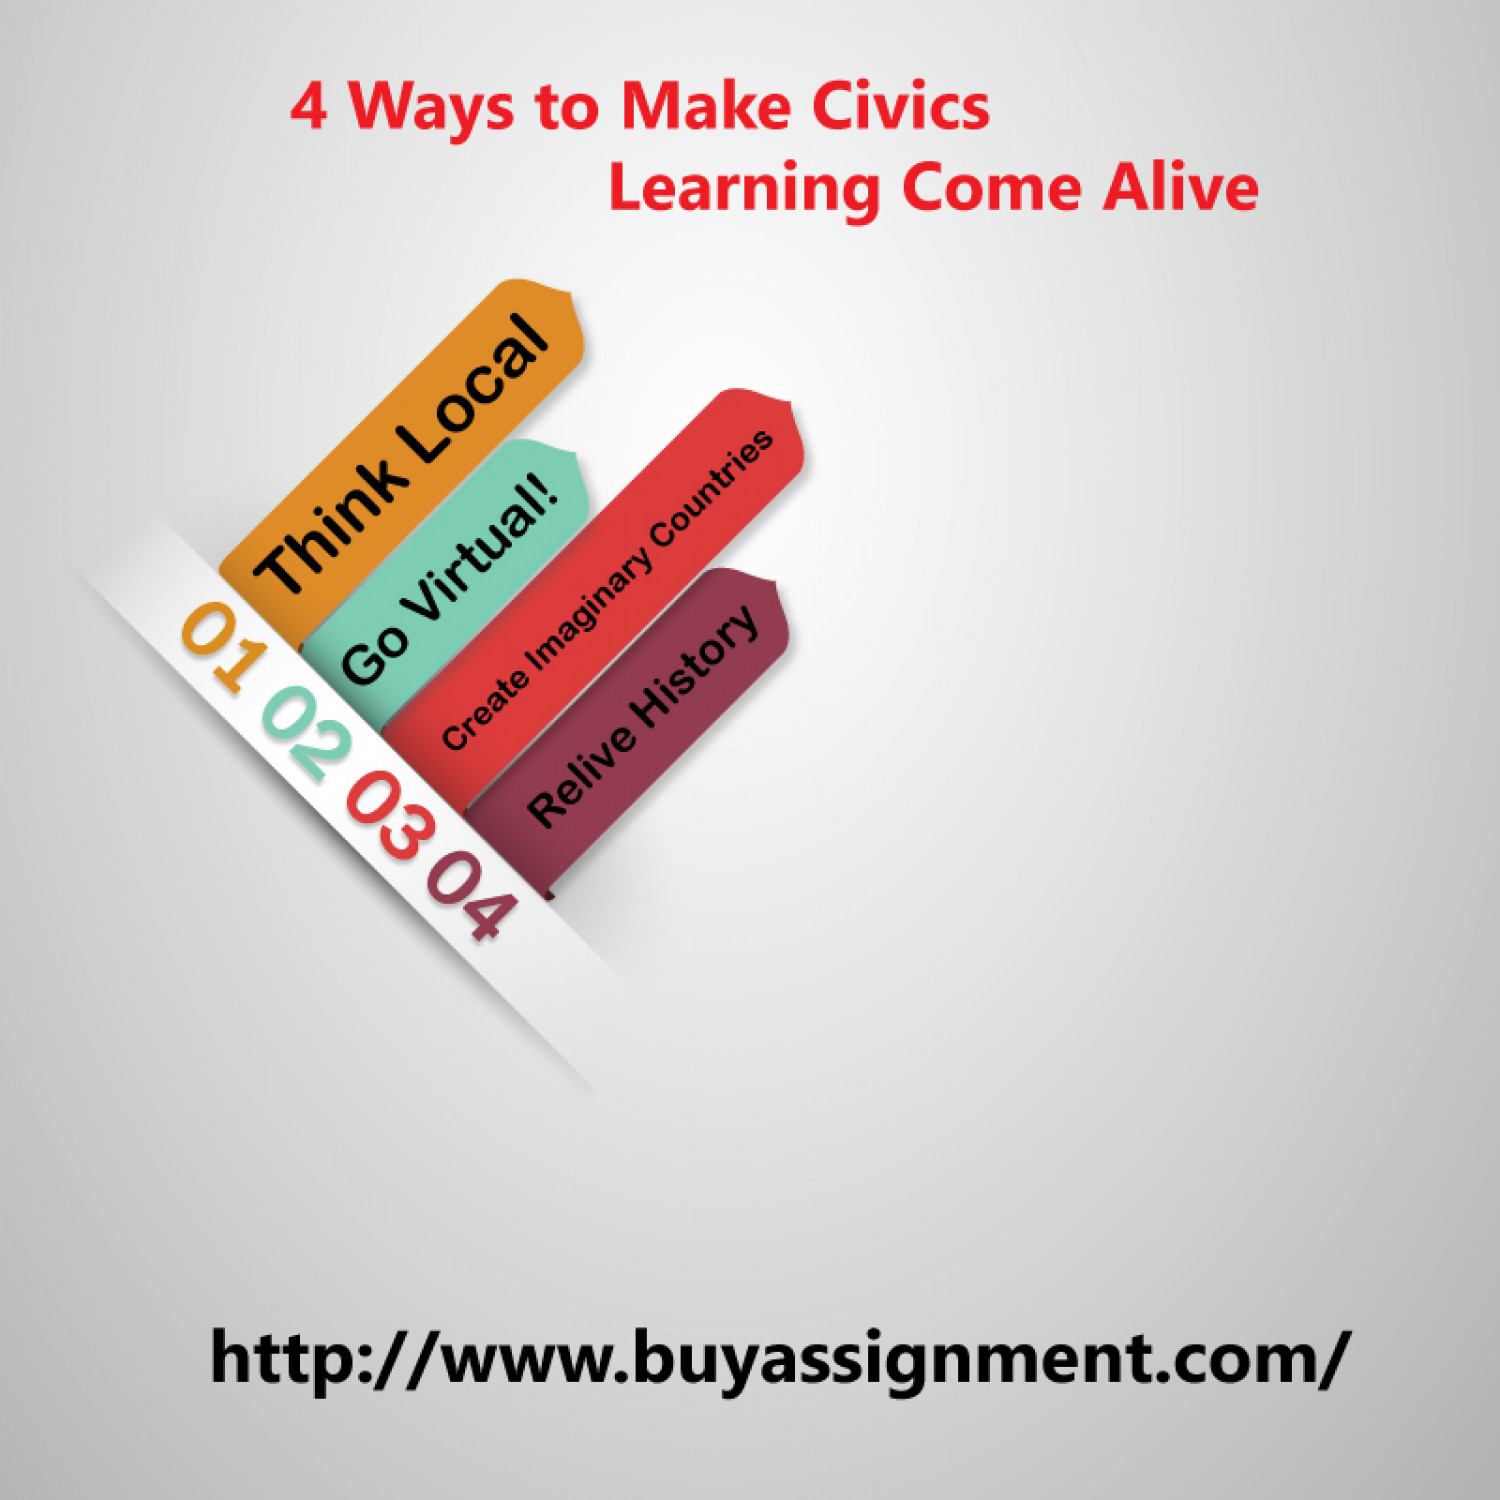 4 Ways to Make Civics Learning Come Alive Infographic